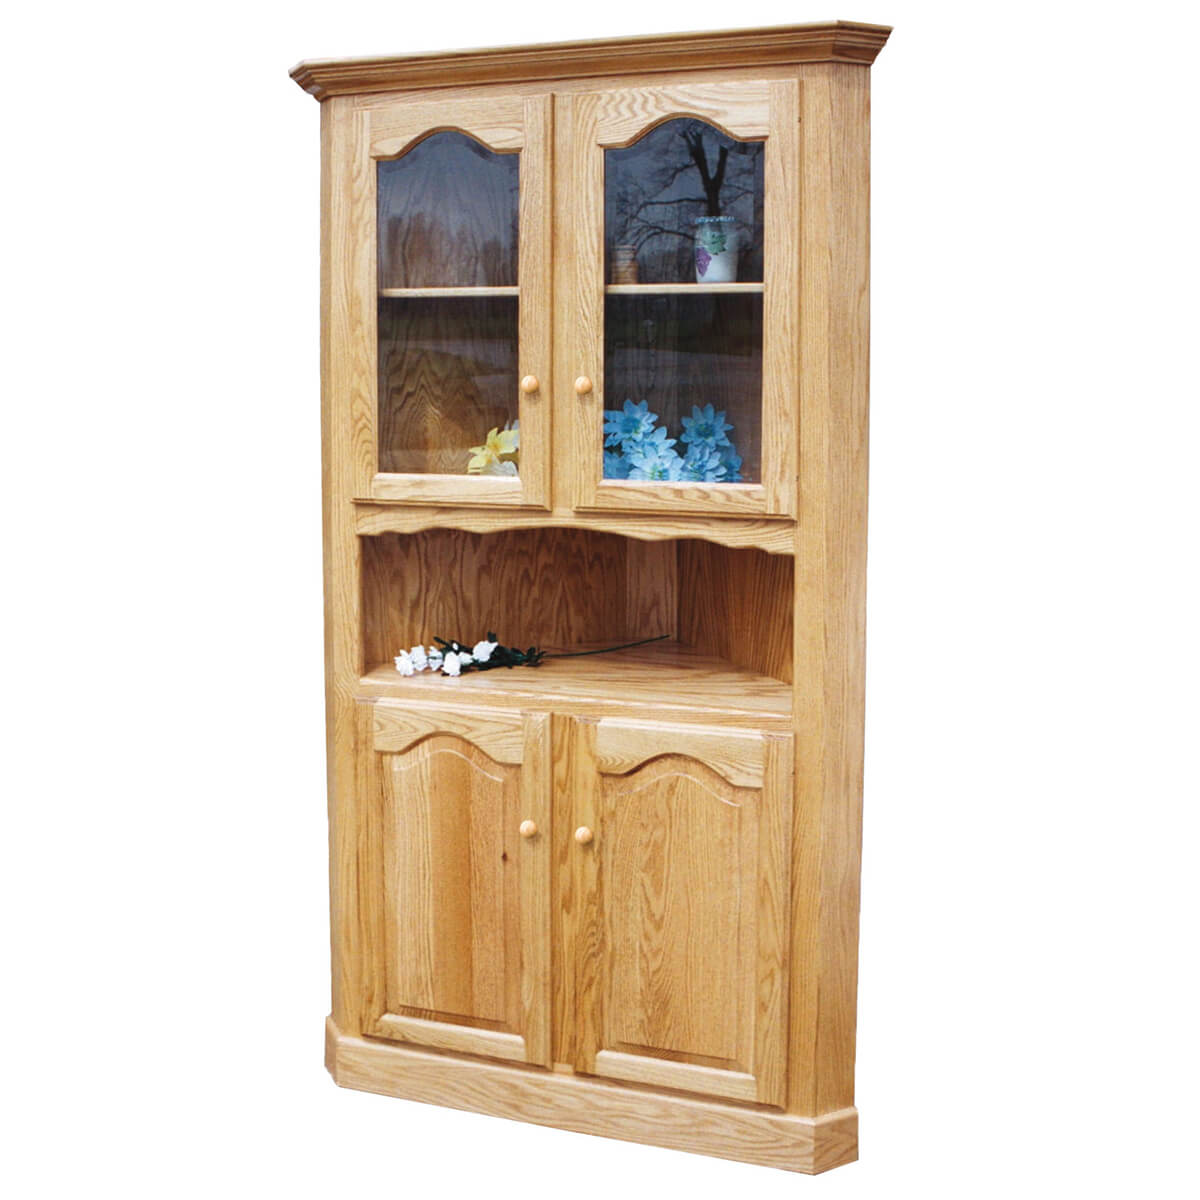 Corner Dining Room Cabinet: Amish Country Heirlooms